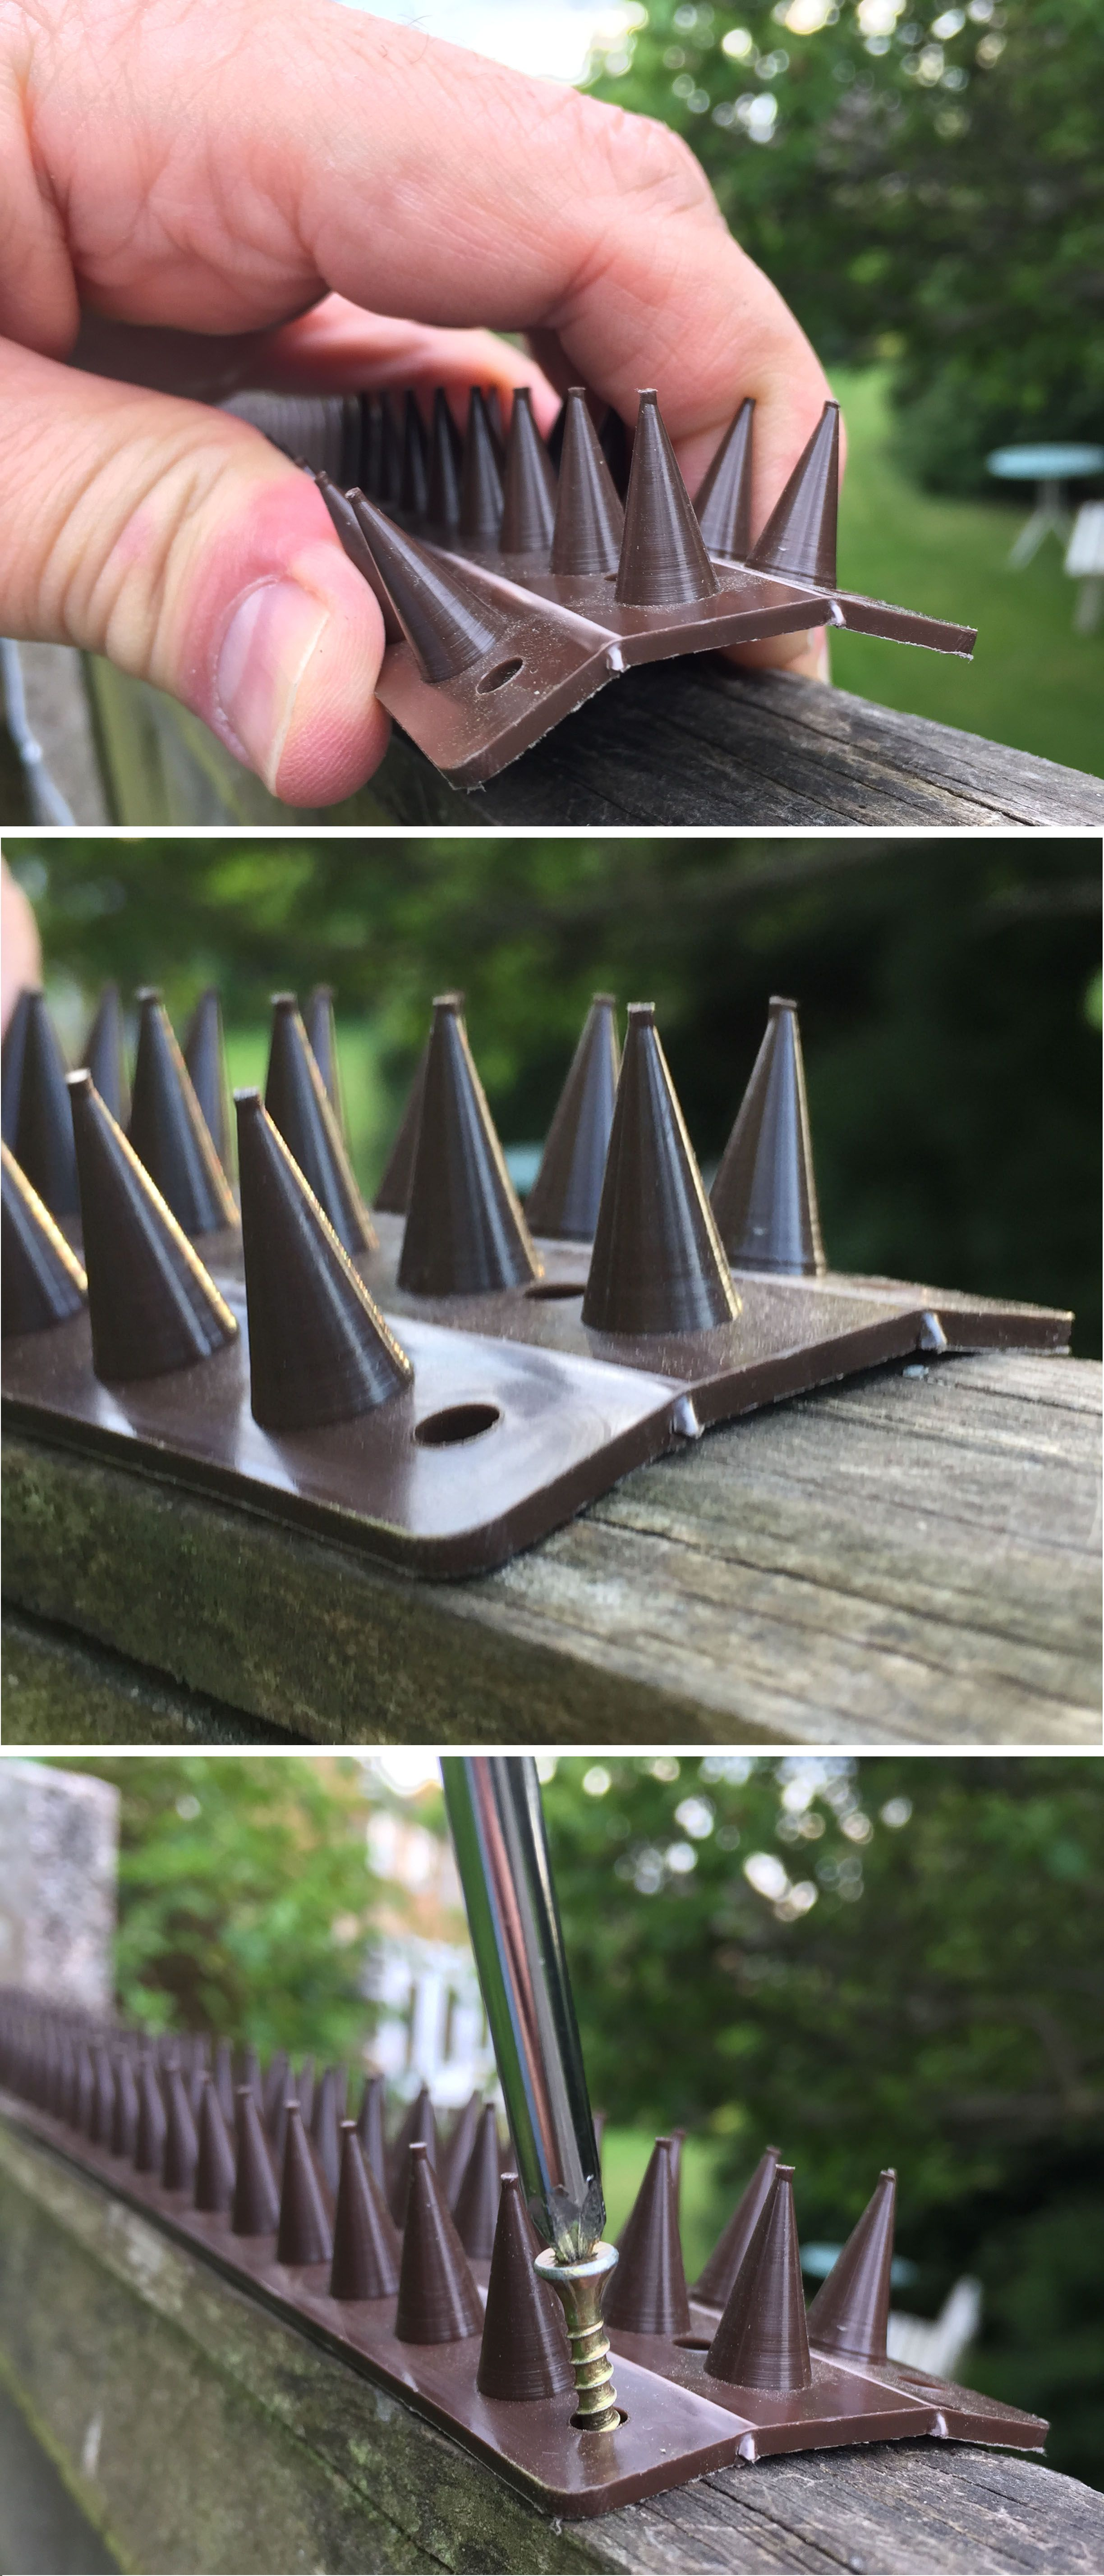 PrikkaStrip garden security spikes are easy to fit to fence tops Just shape fit and screw